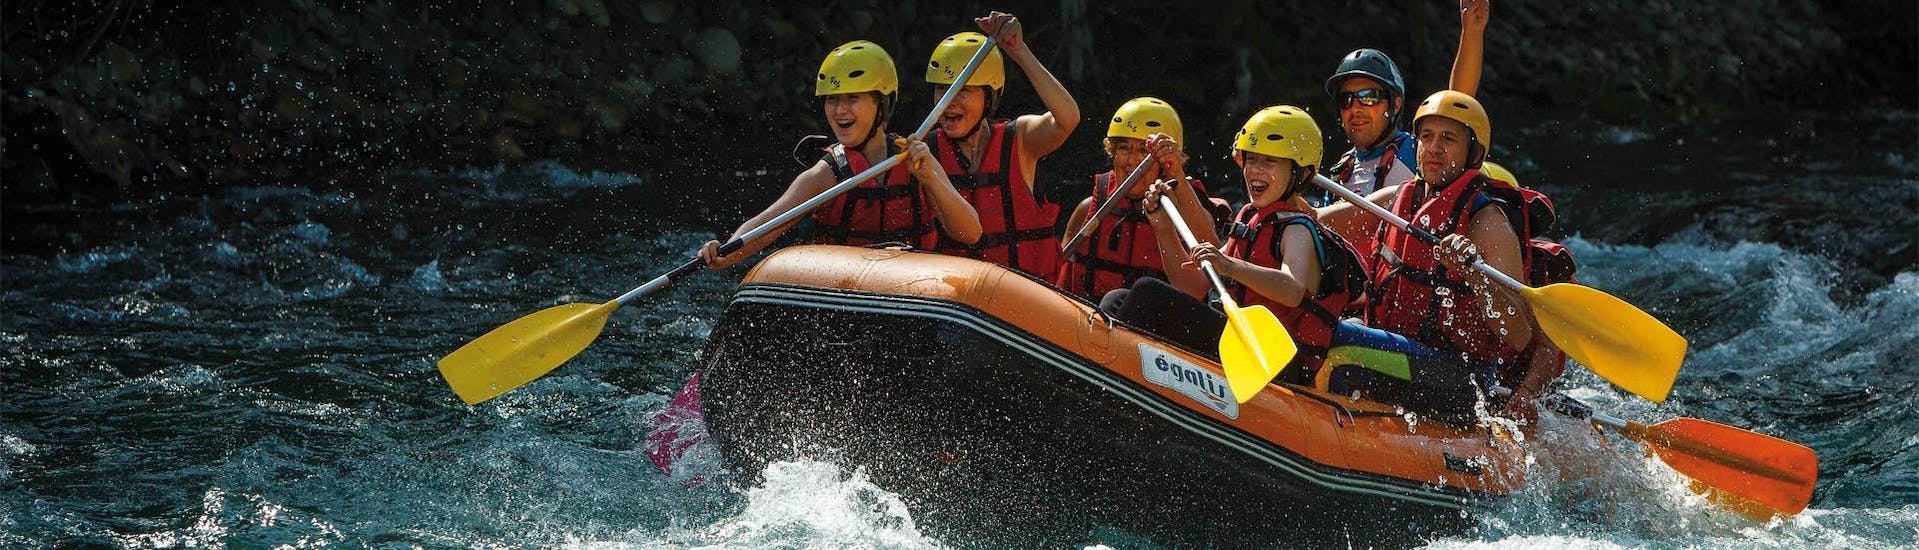 A group paddles while laughing on their raft during the activity Rafting on the Garonne - Discovery with H2O vives.